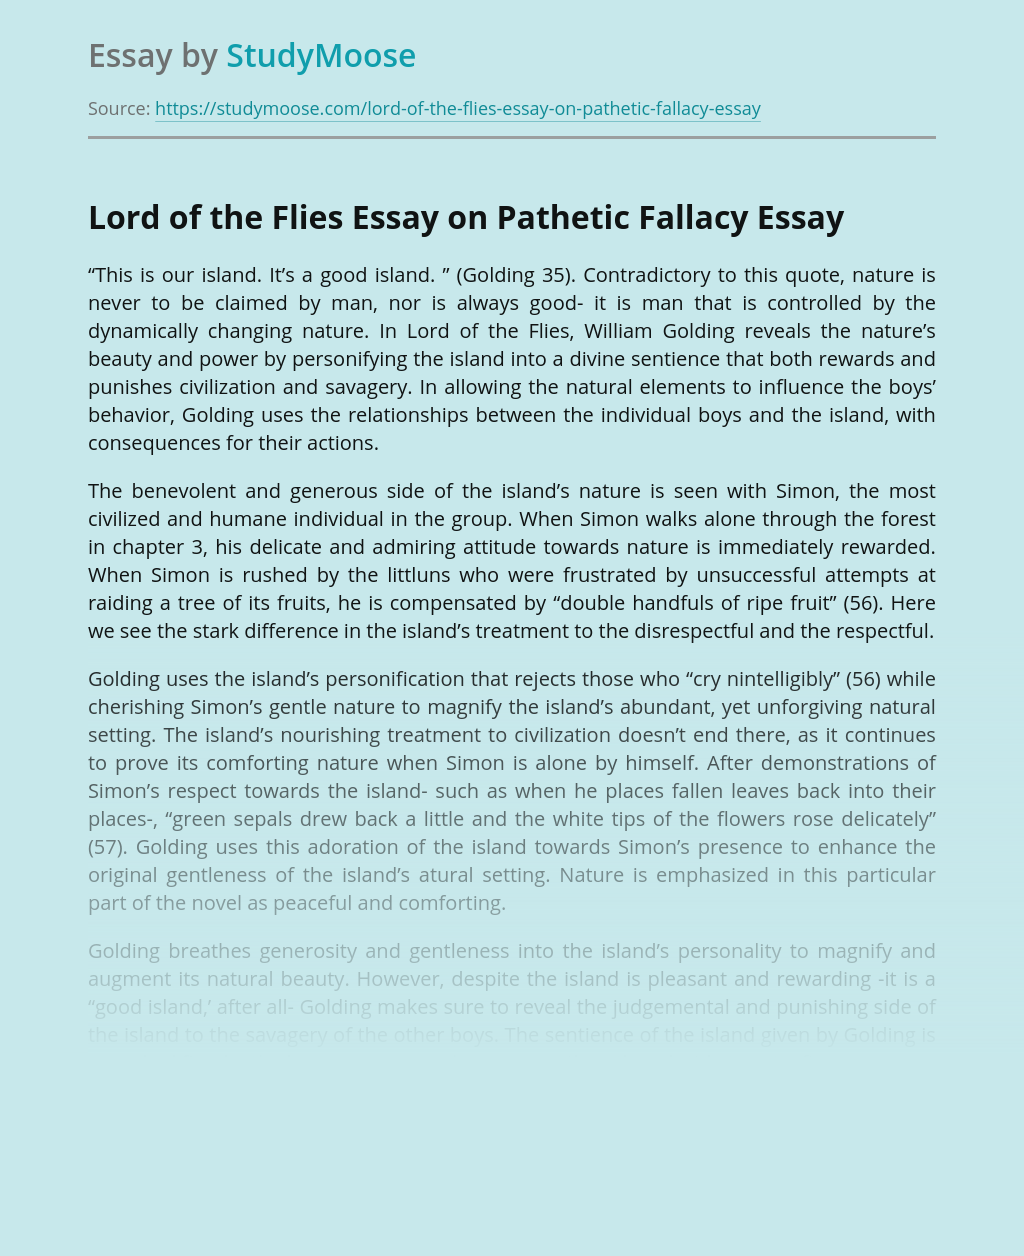 Lord of the Flies Essay on Pathetic Fallacy